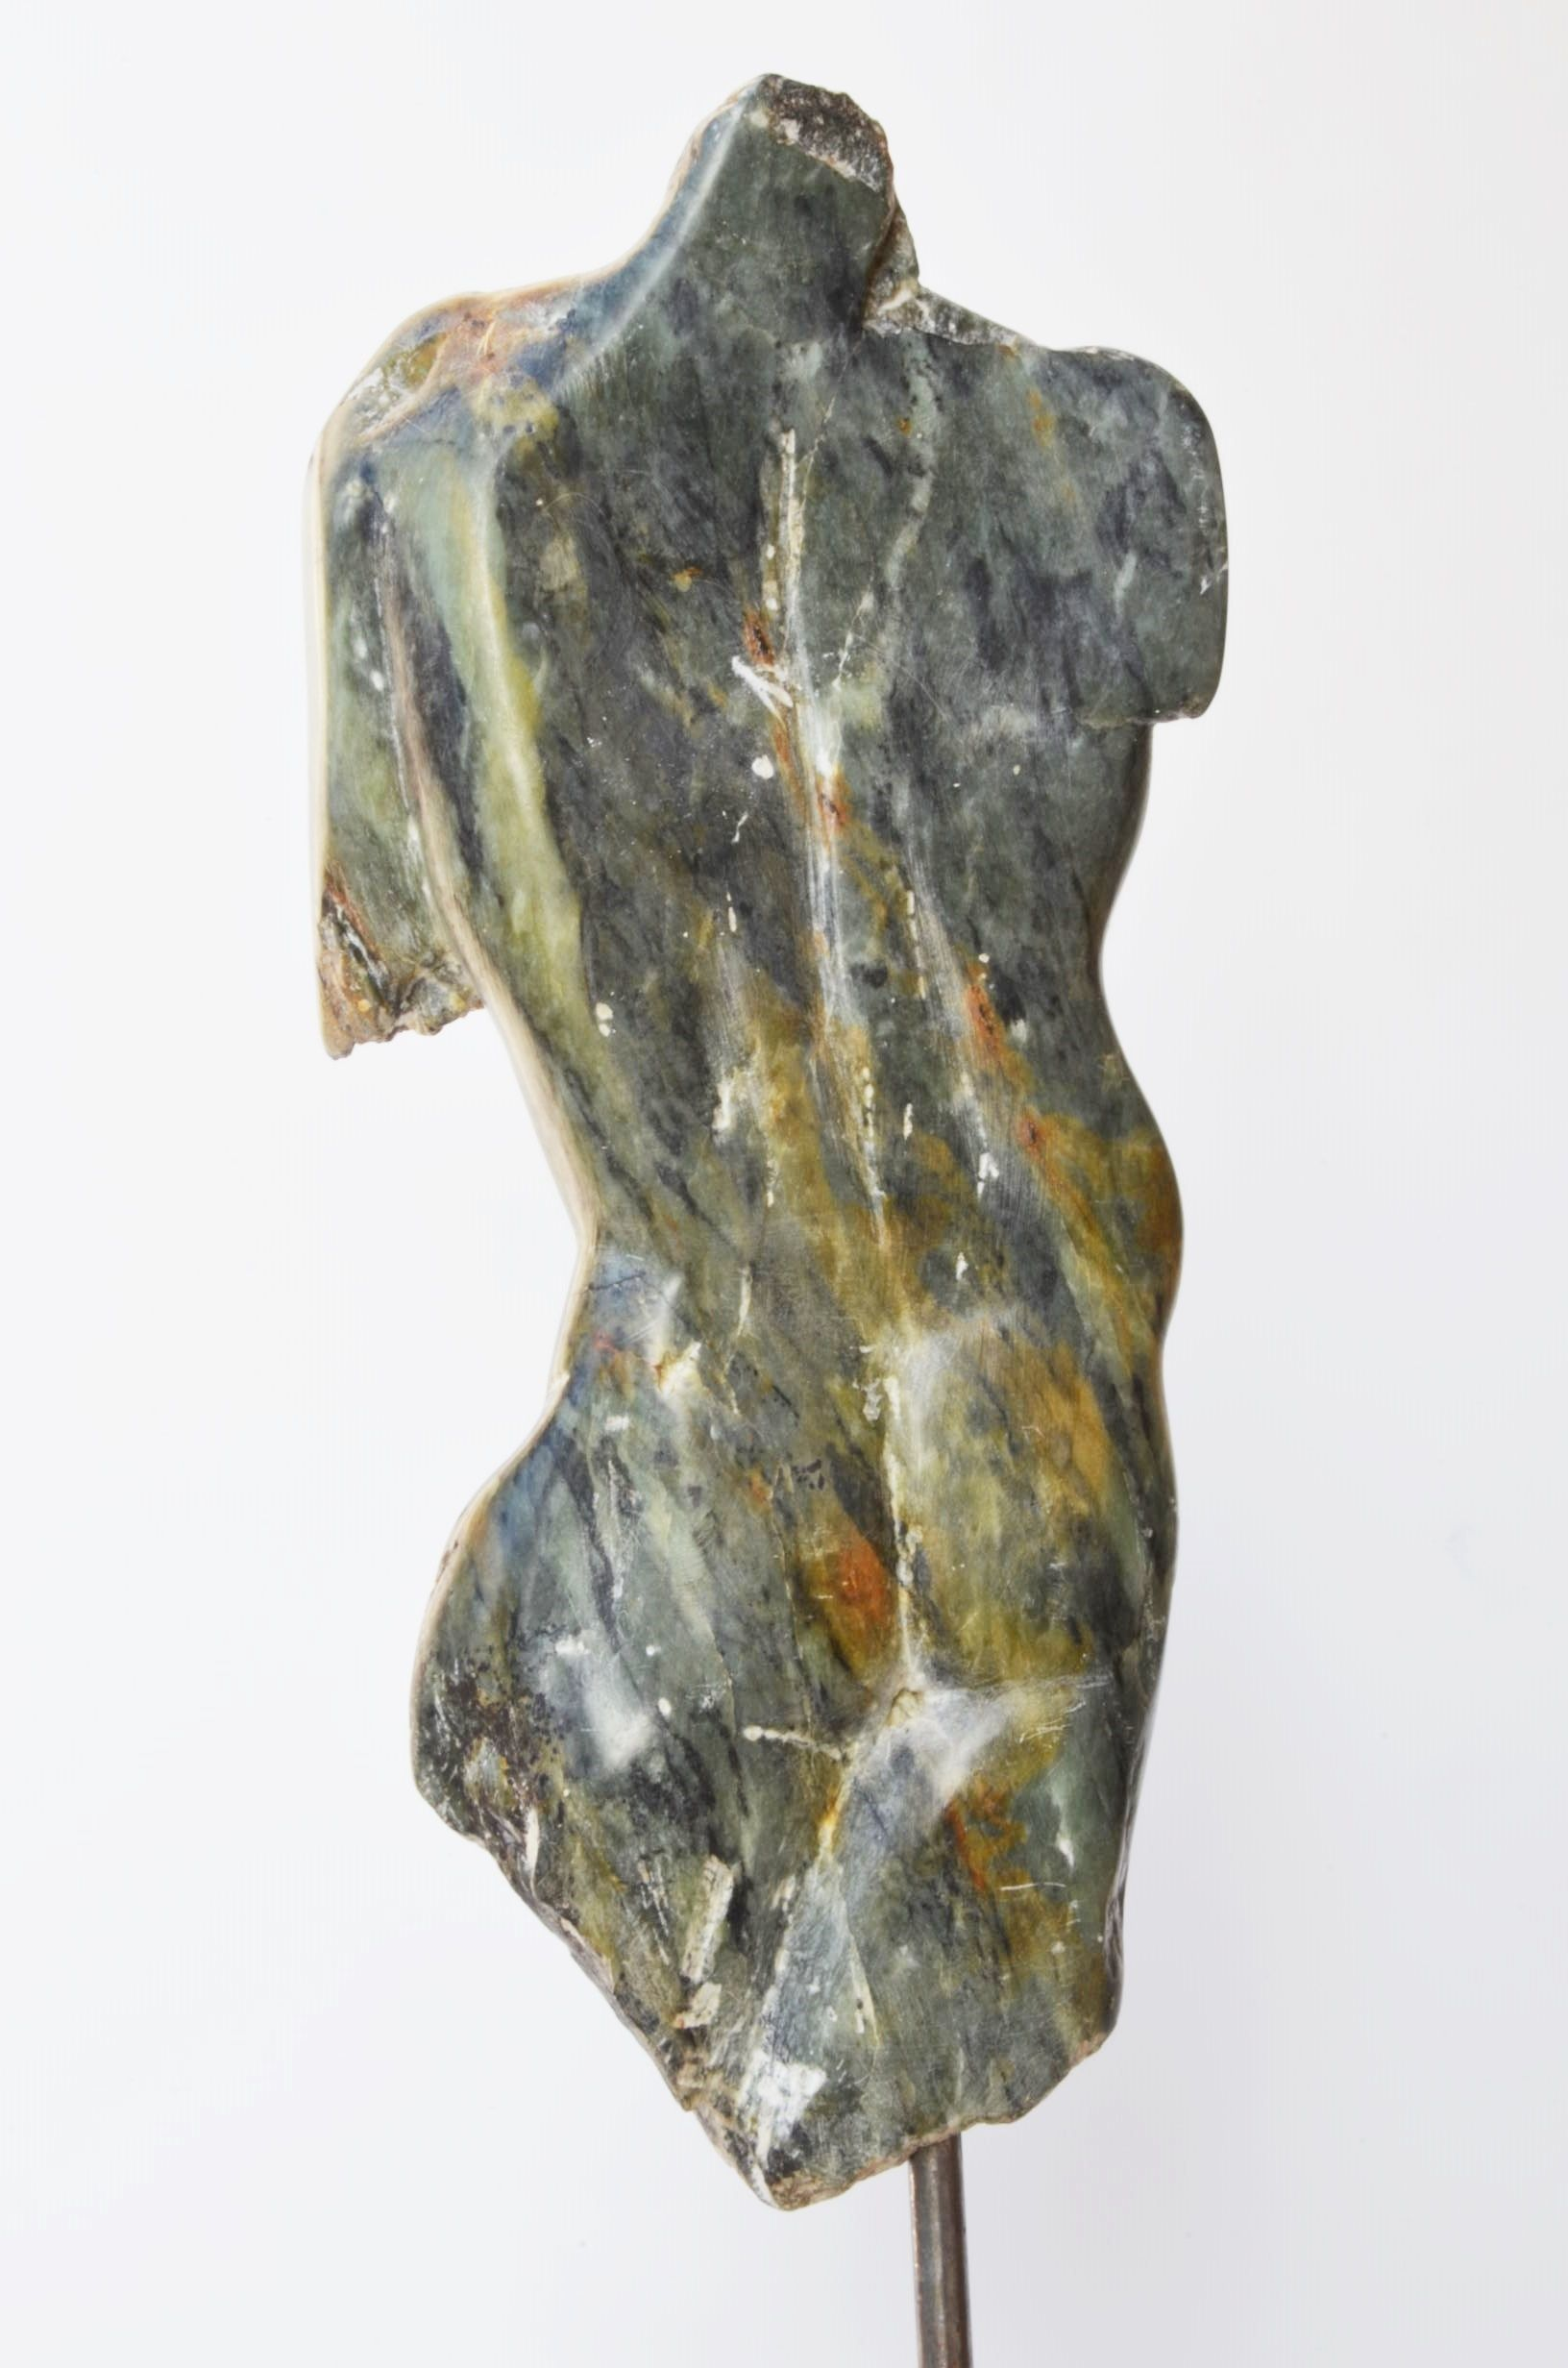 Torse d'homme III,Yann Guillon,Sculpture, detail 1